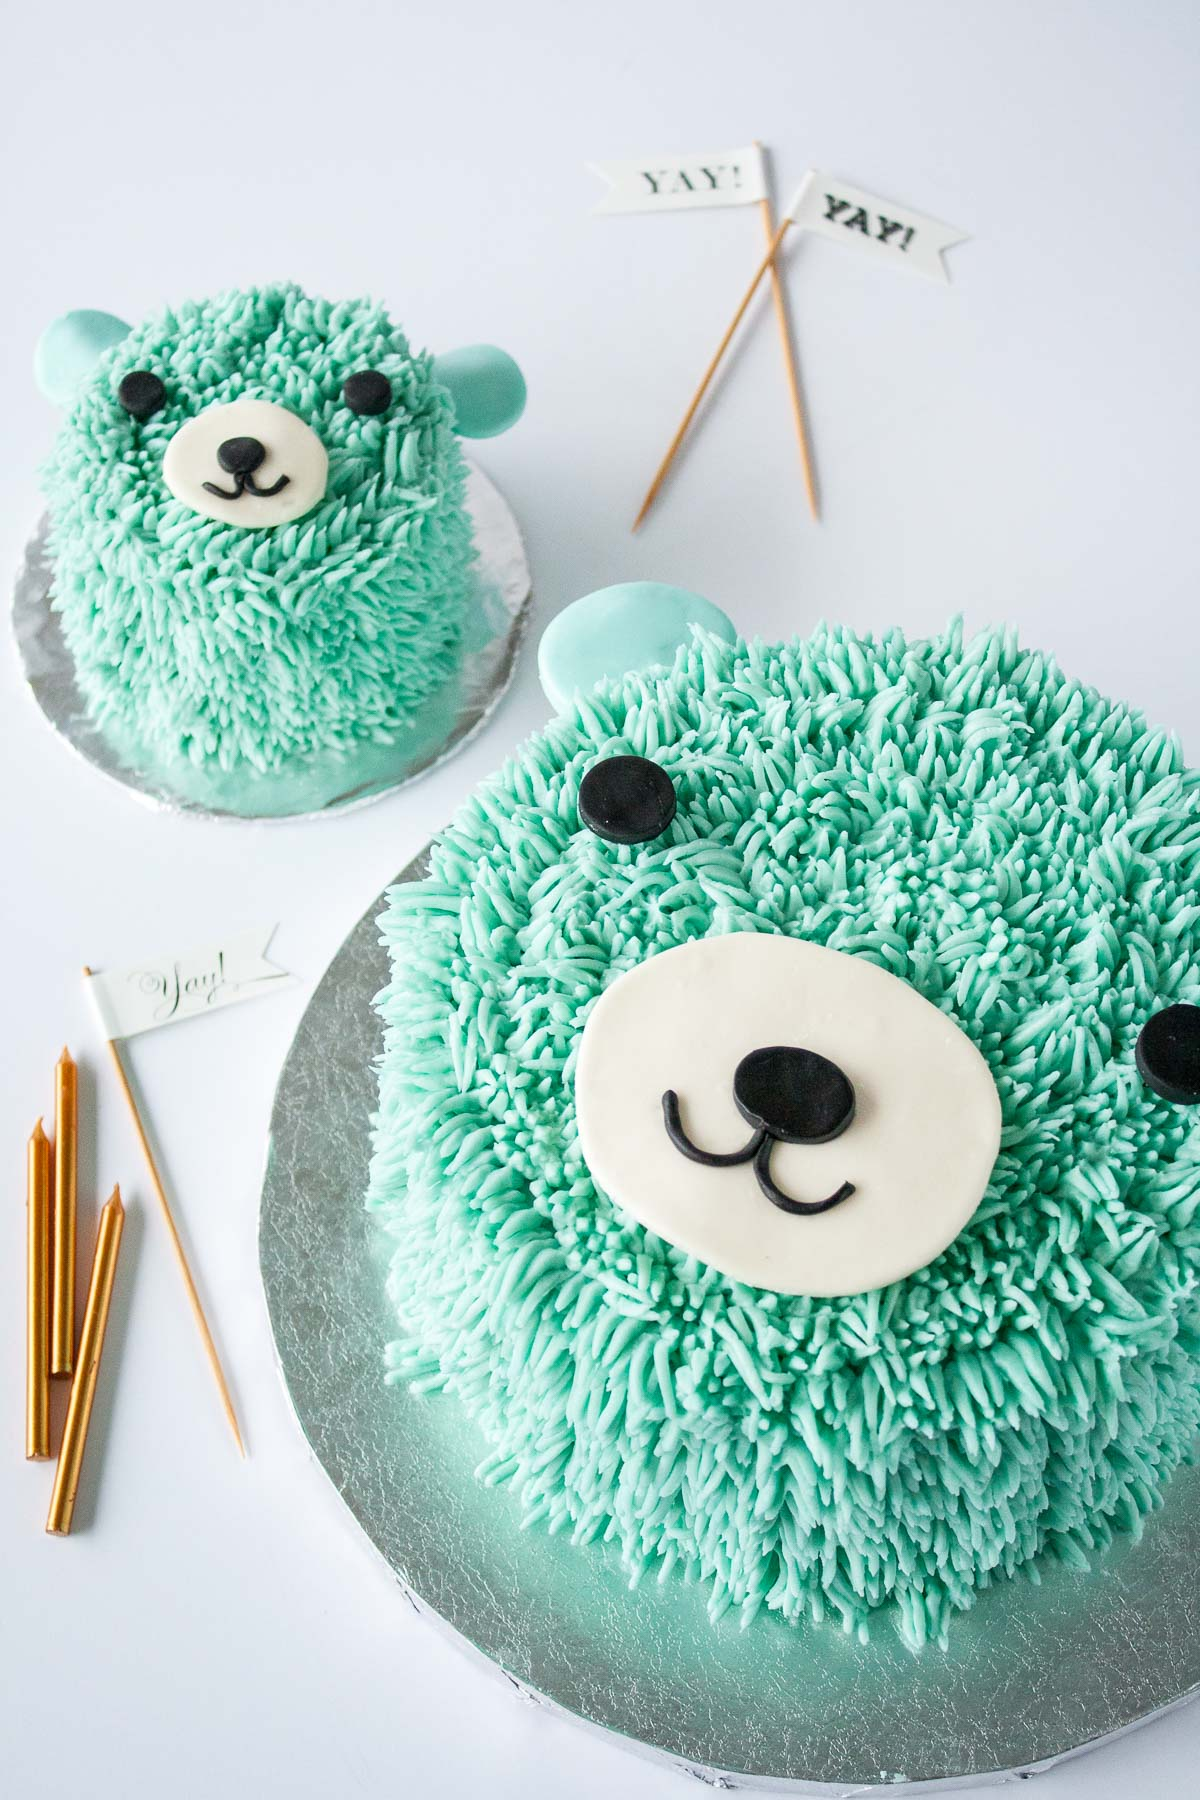 Blue Bear Birthday Cake - Liv for Cake